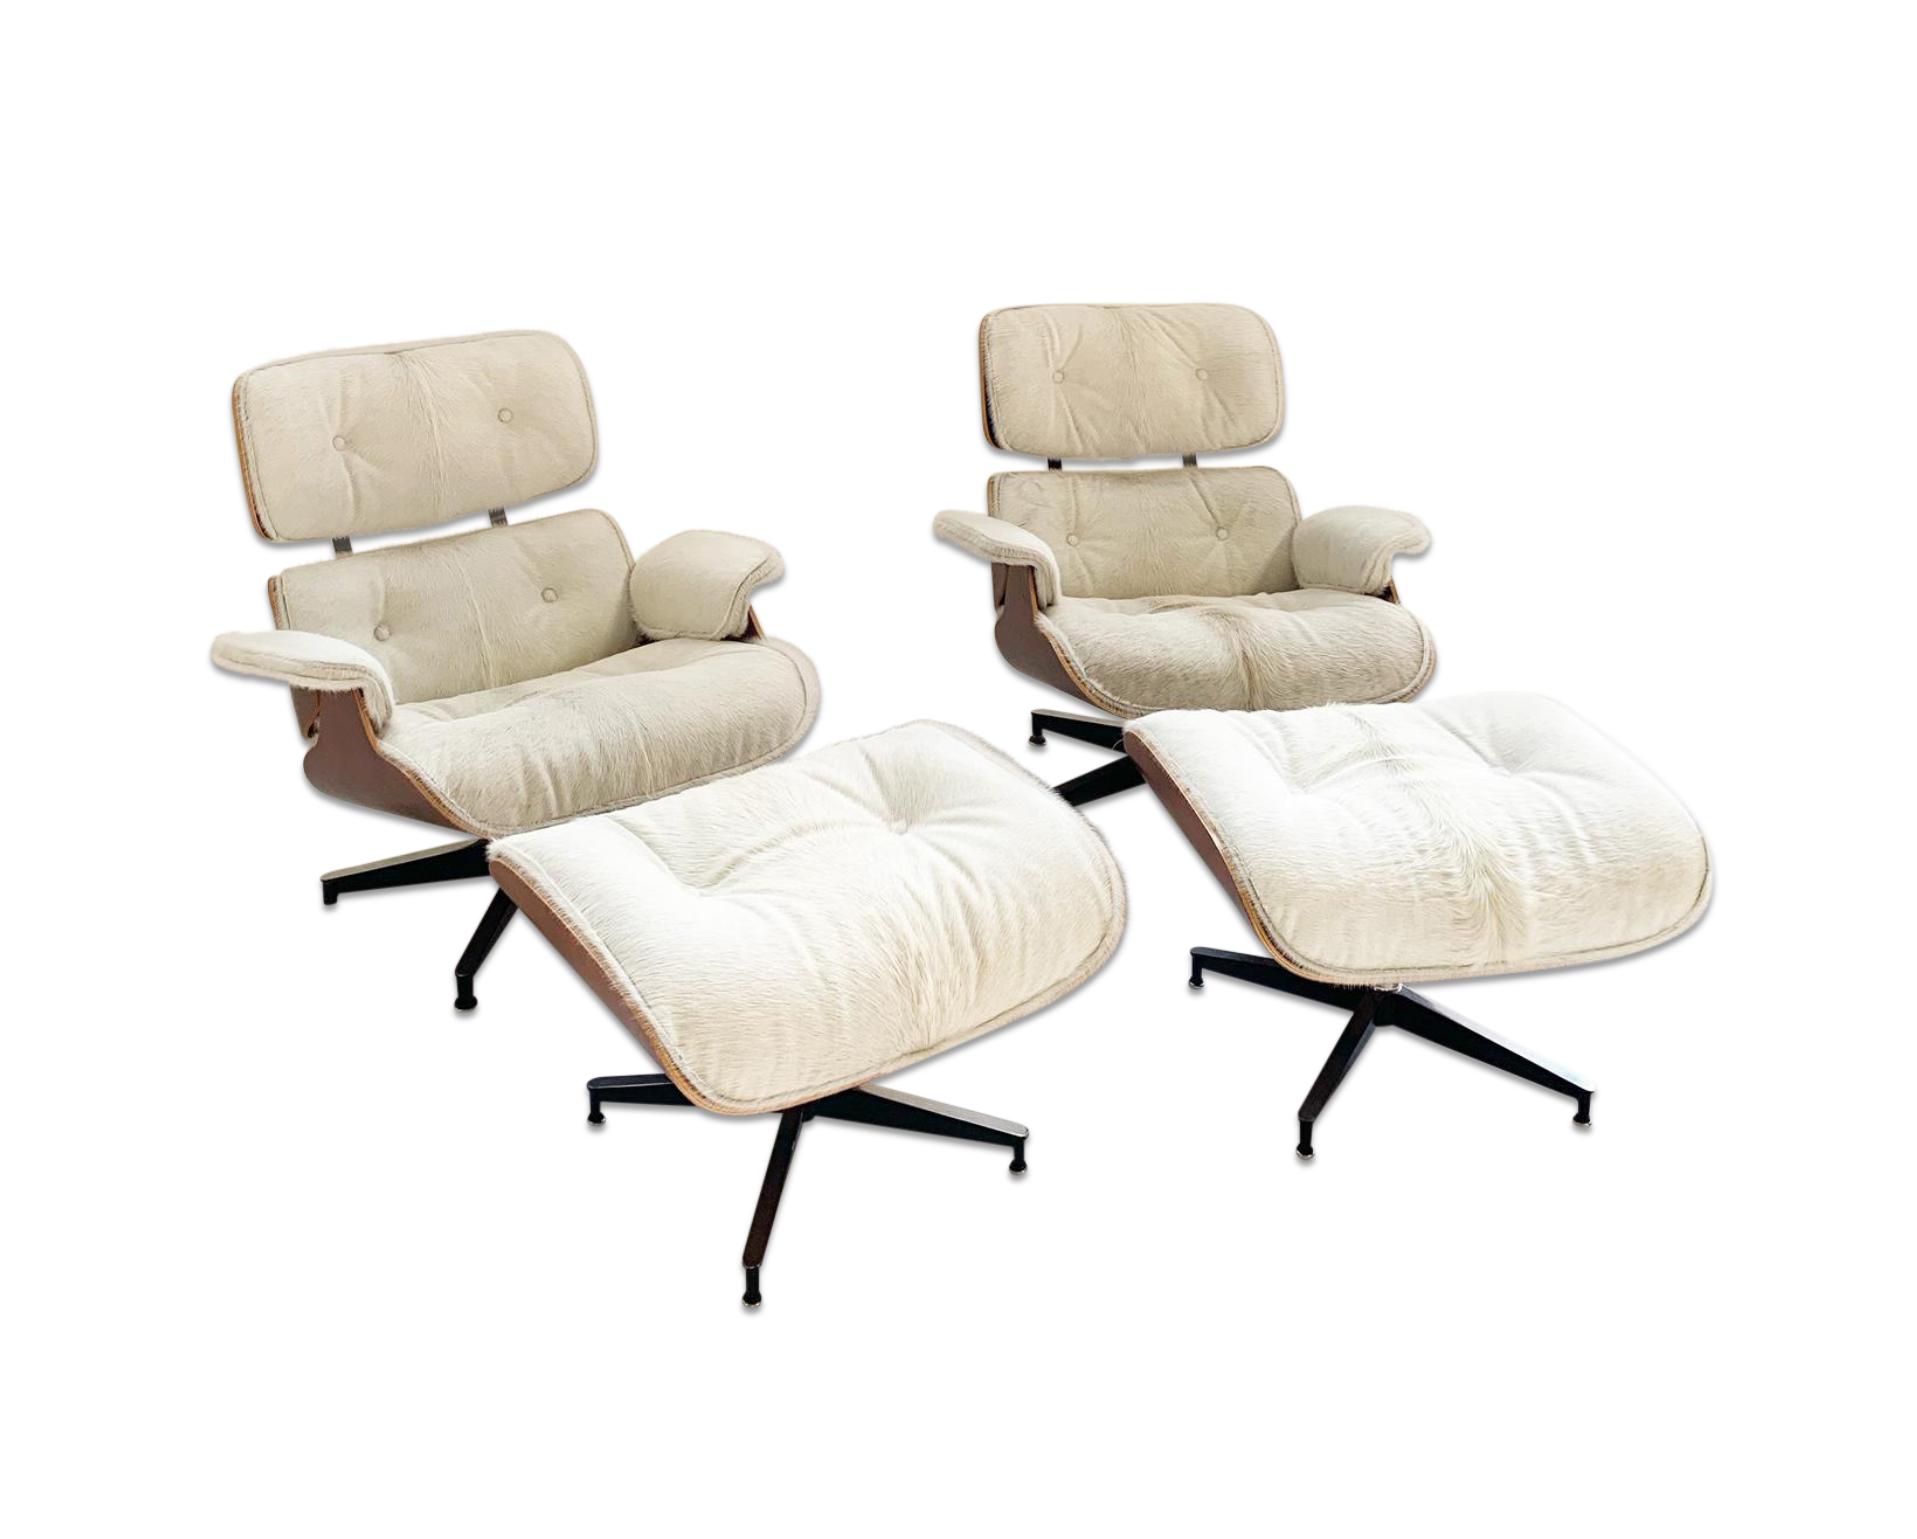 Terrific 670 Lounge Chairs And 671 Ottomans In Brazilian Cowhide Caraccident5 Cool Chair Designs And Ideas Caraccident5Info